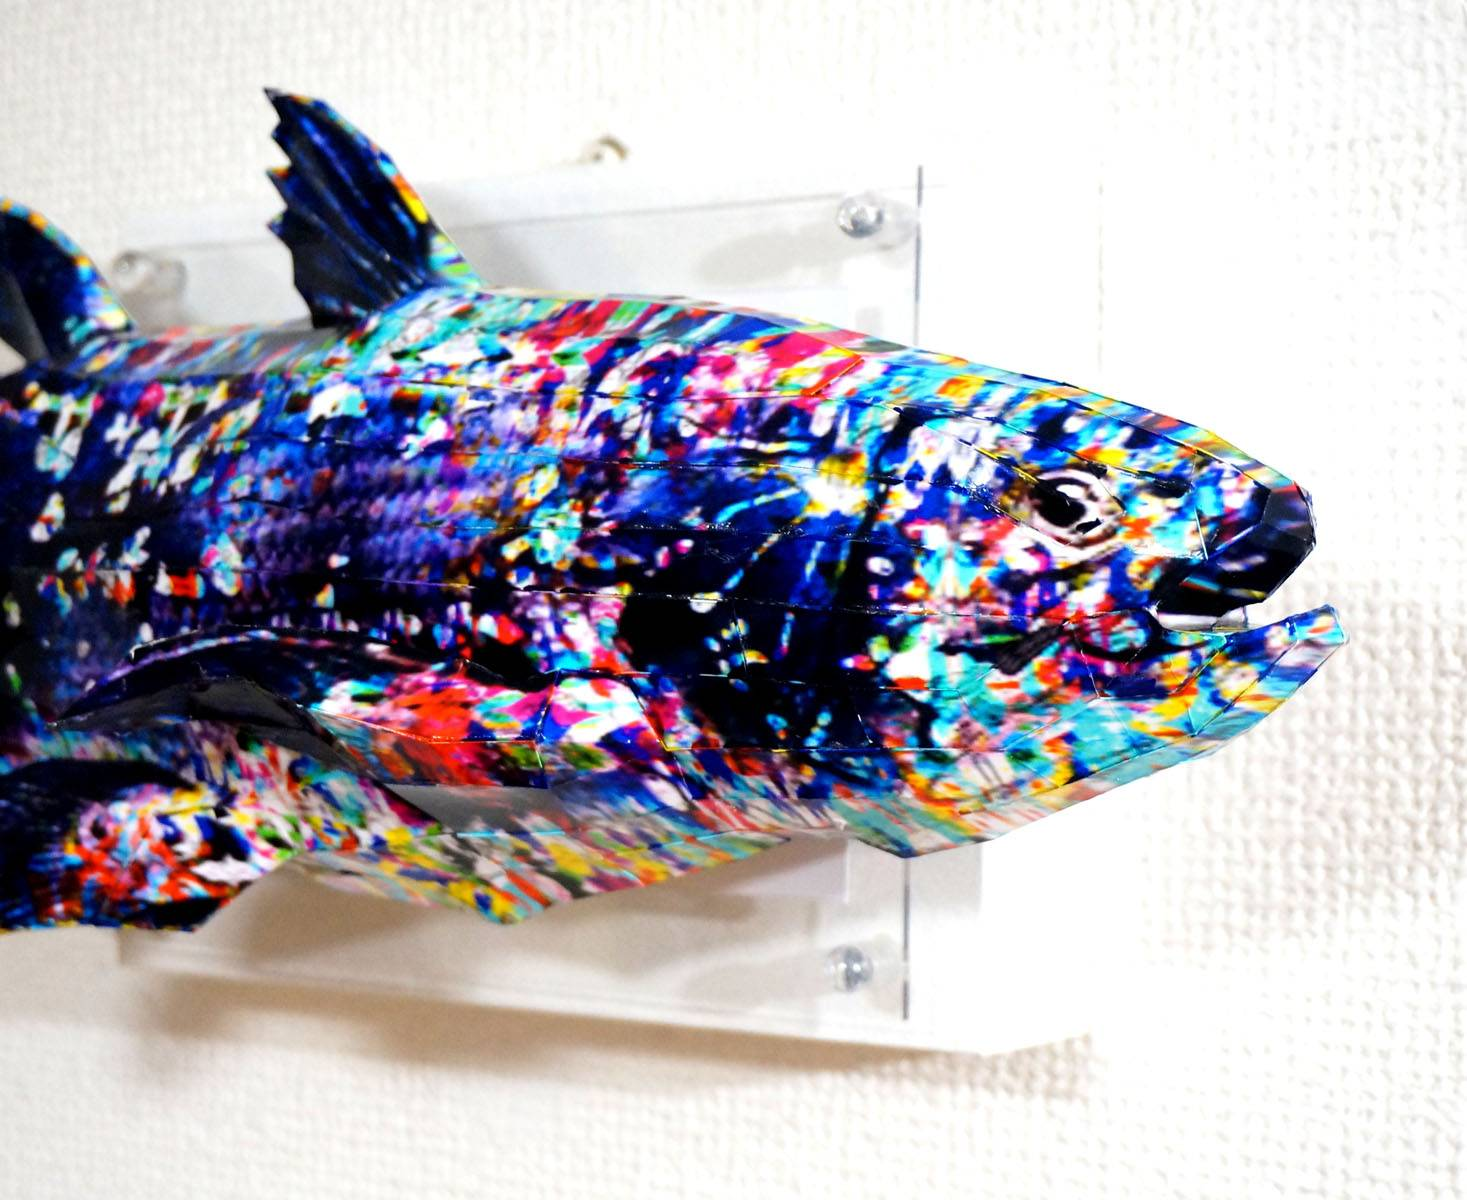 Coelacanth can't fit in the panel ED:5/10